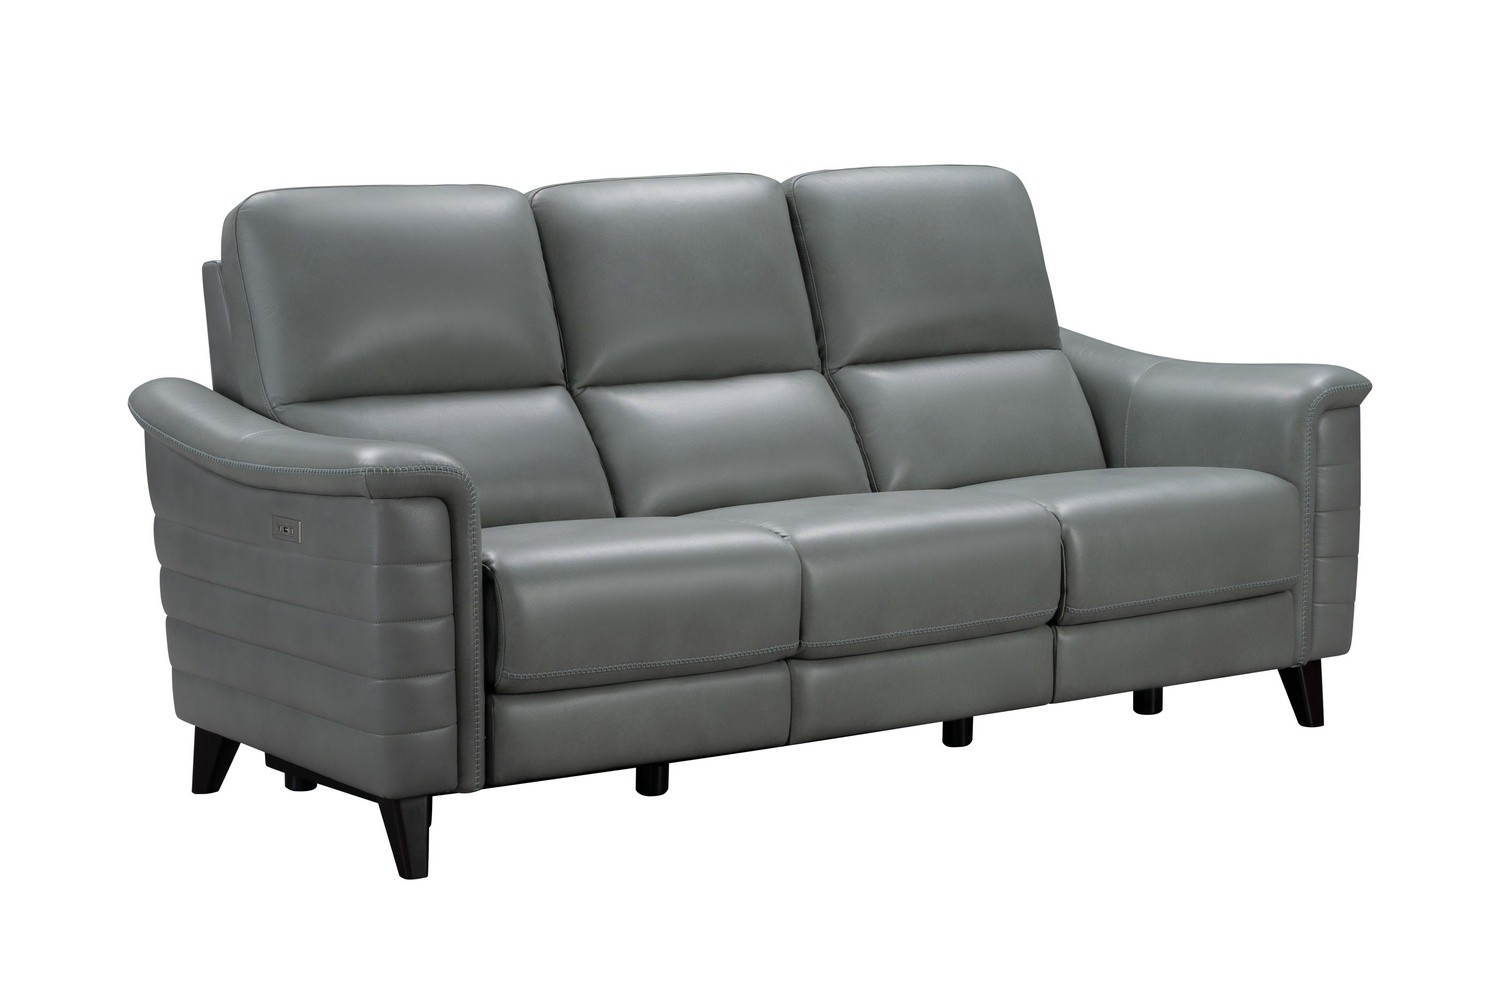 Barcalounger Malone Power Reclining Sofa with Power Head Rests - Antonio Green Gray/Leather Match